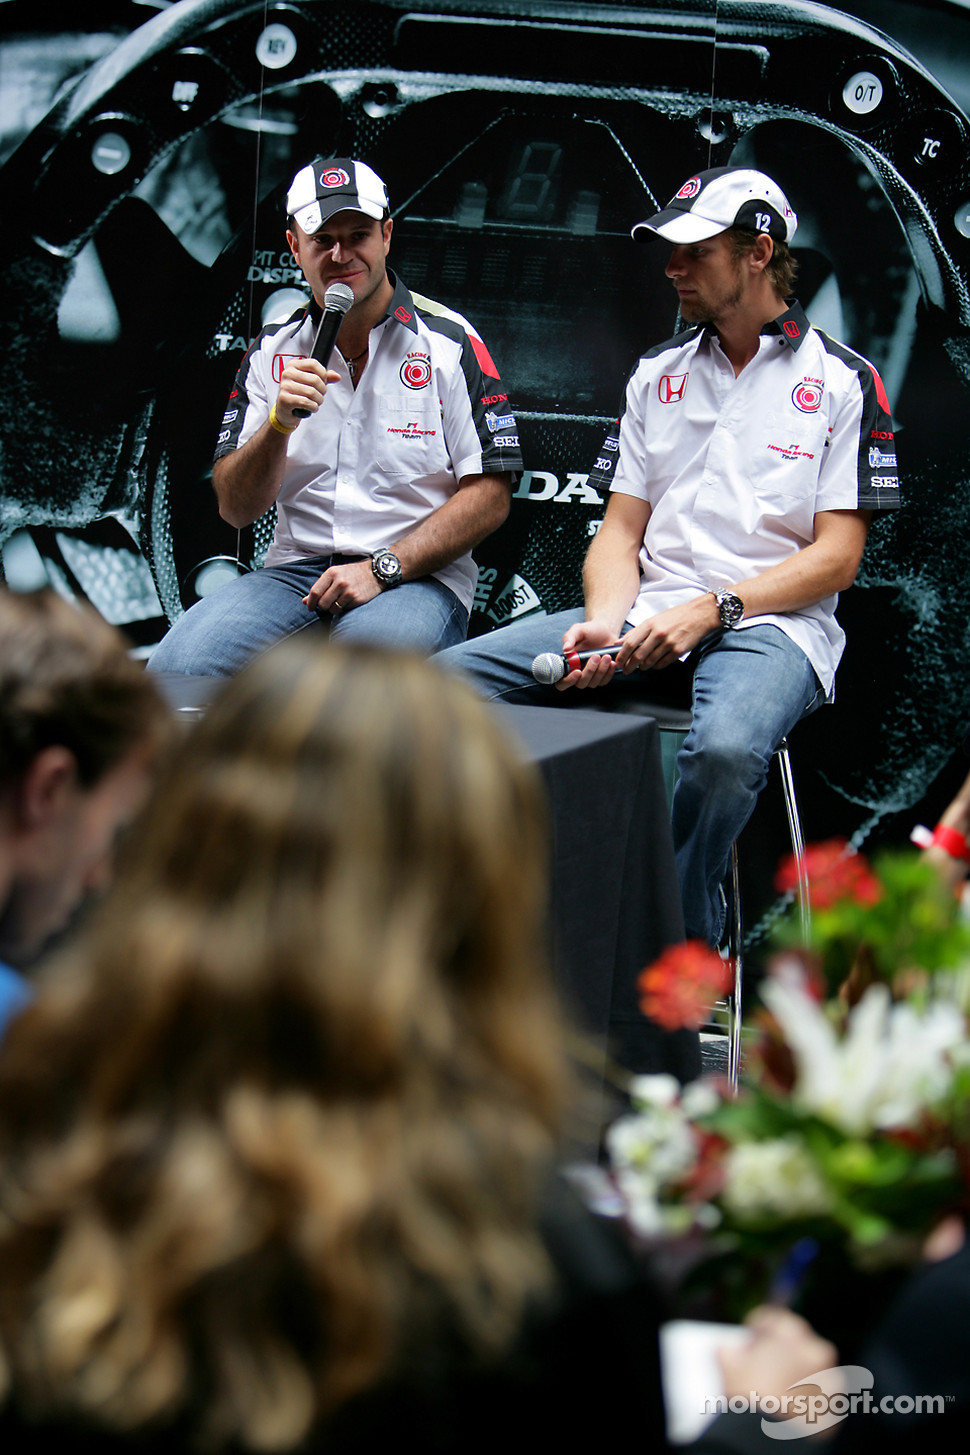 Lucky Strike PR day: Jenson Button and Rubens Barrichello give an interview